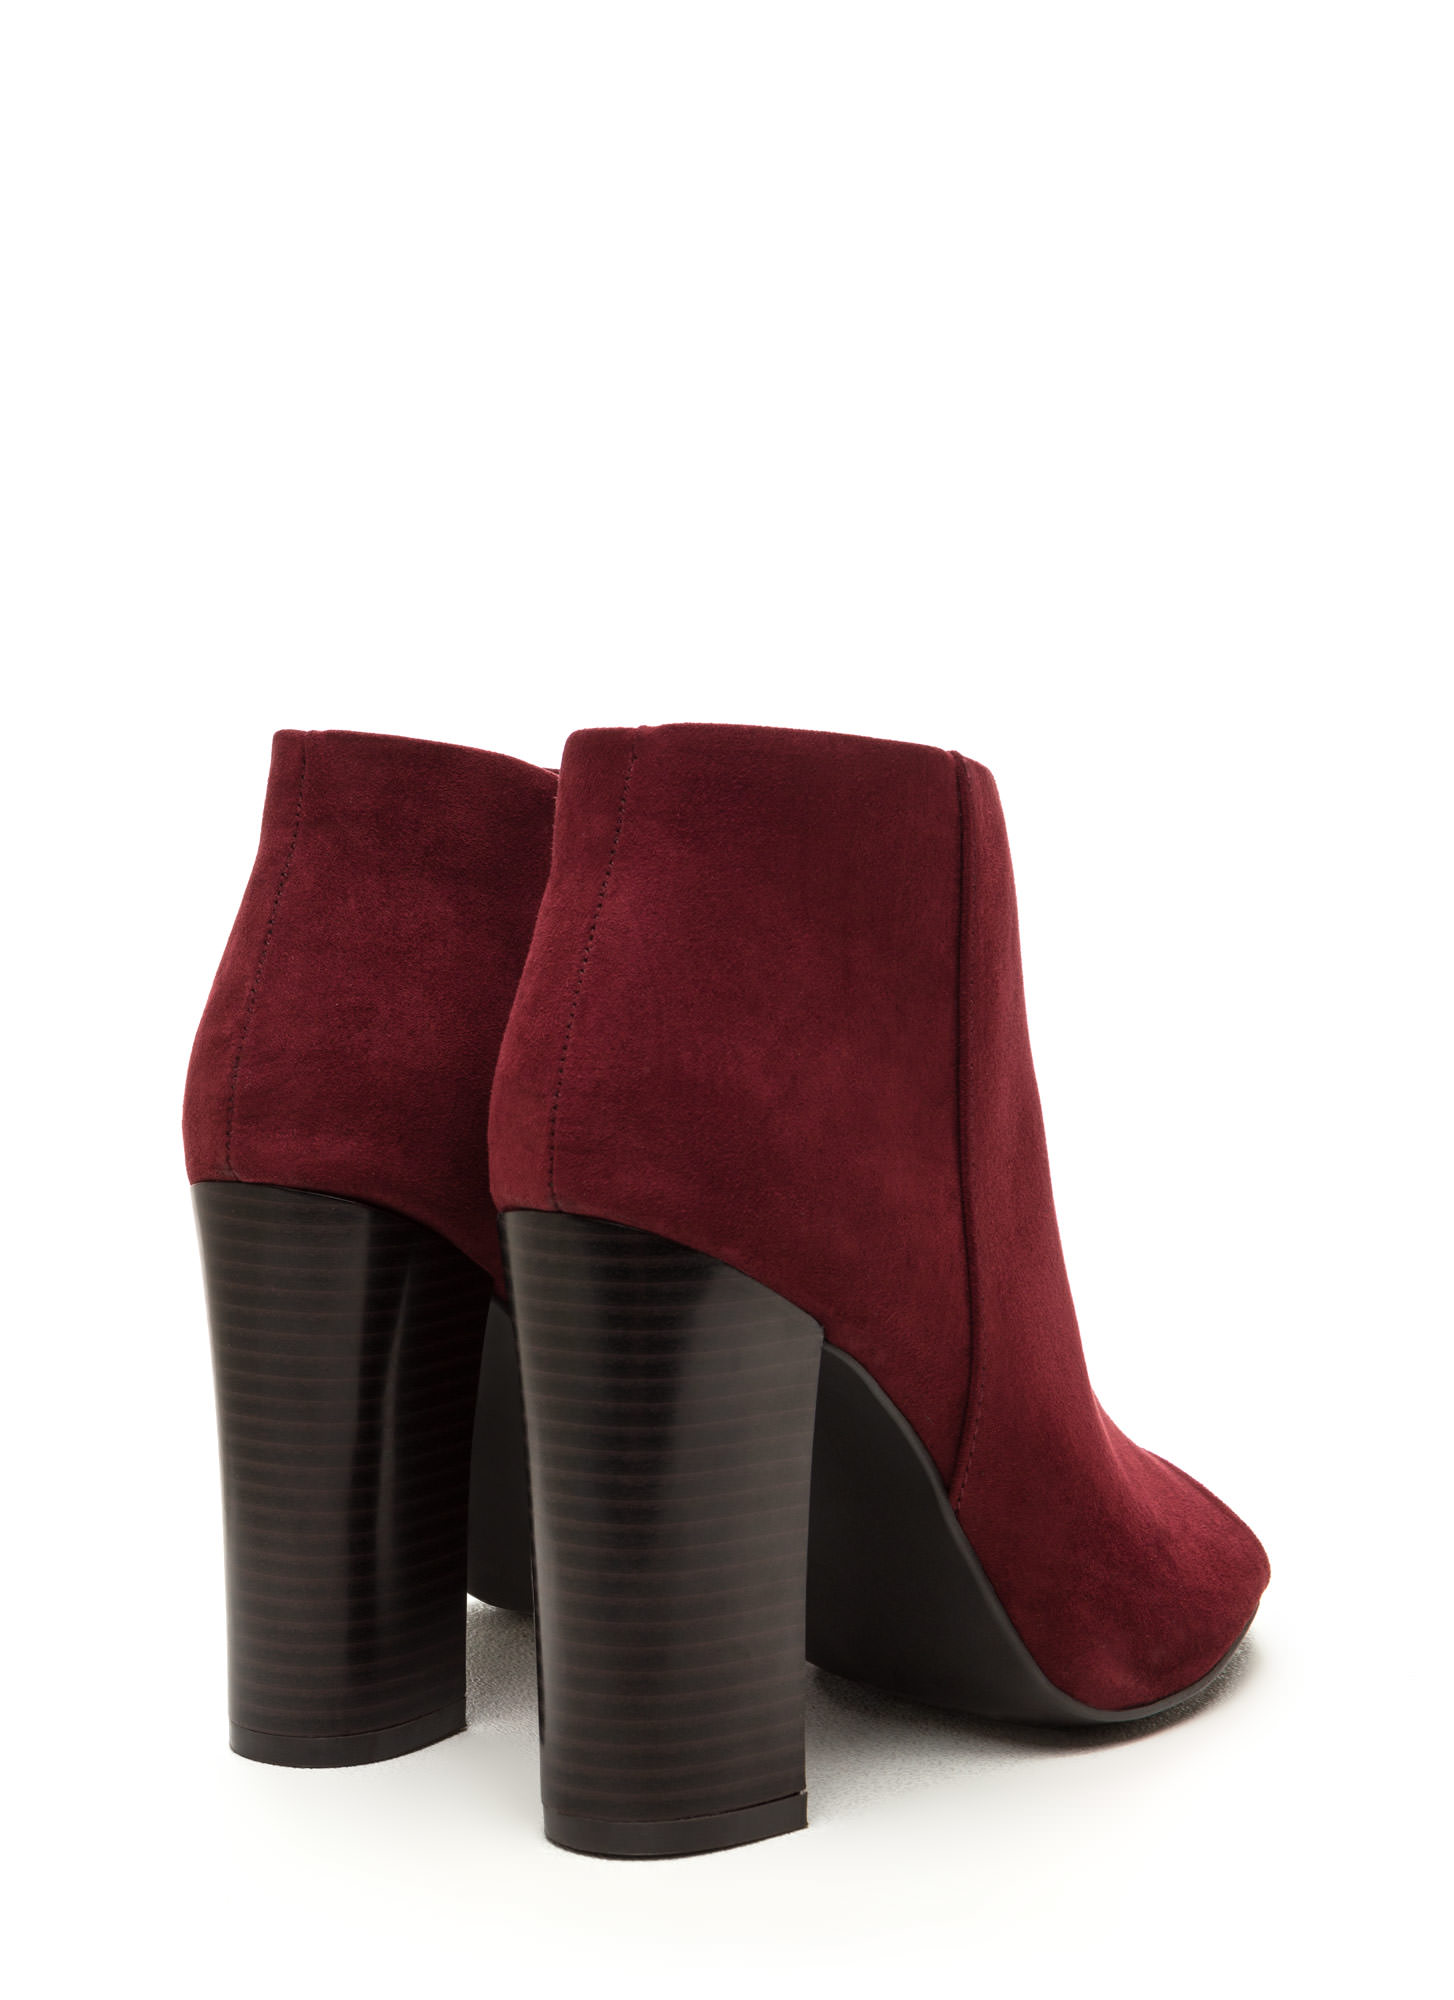 Not A Peep Faux Nubuck Booties BURGUNDY